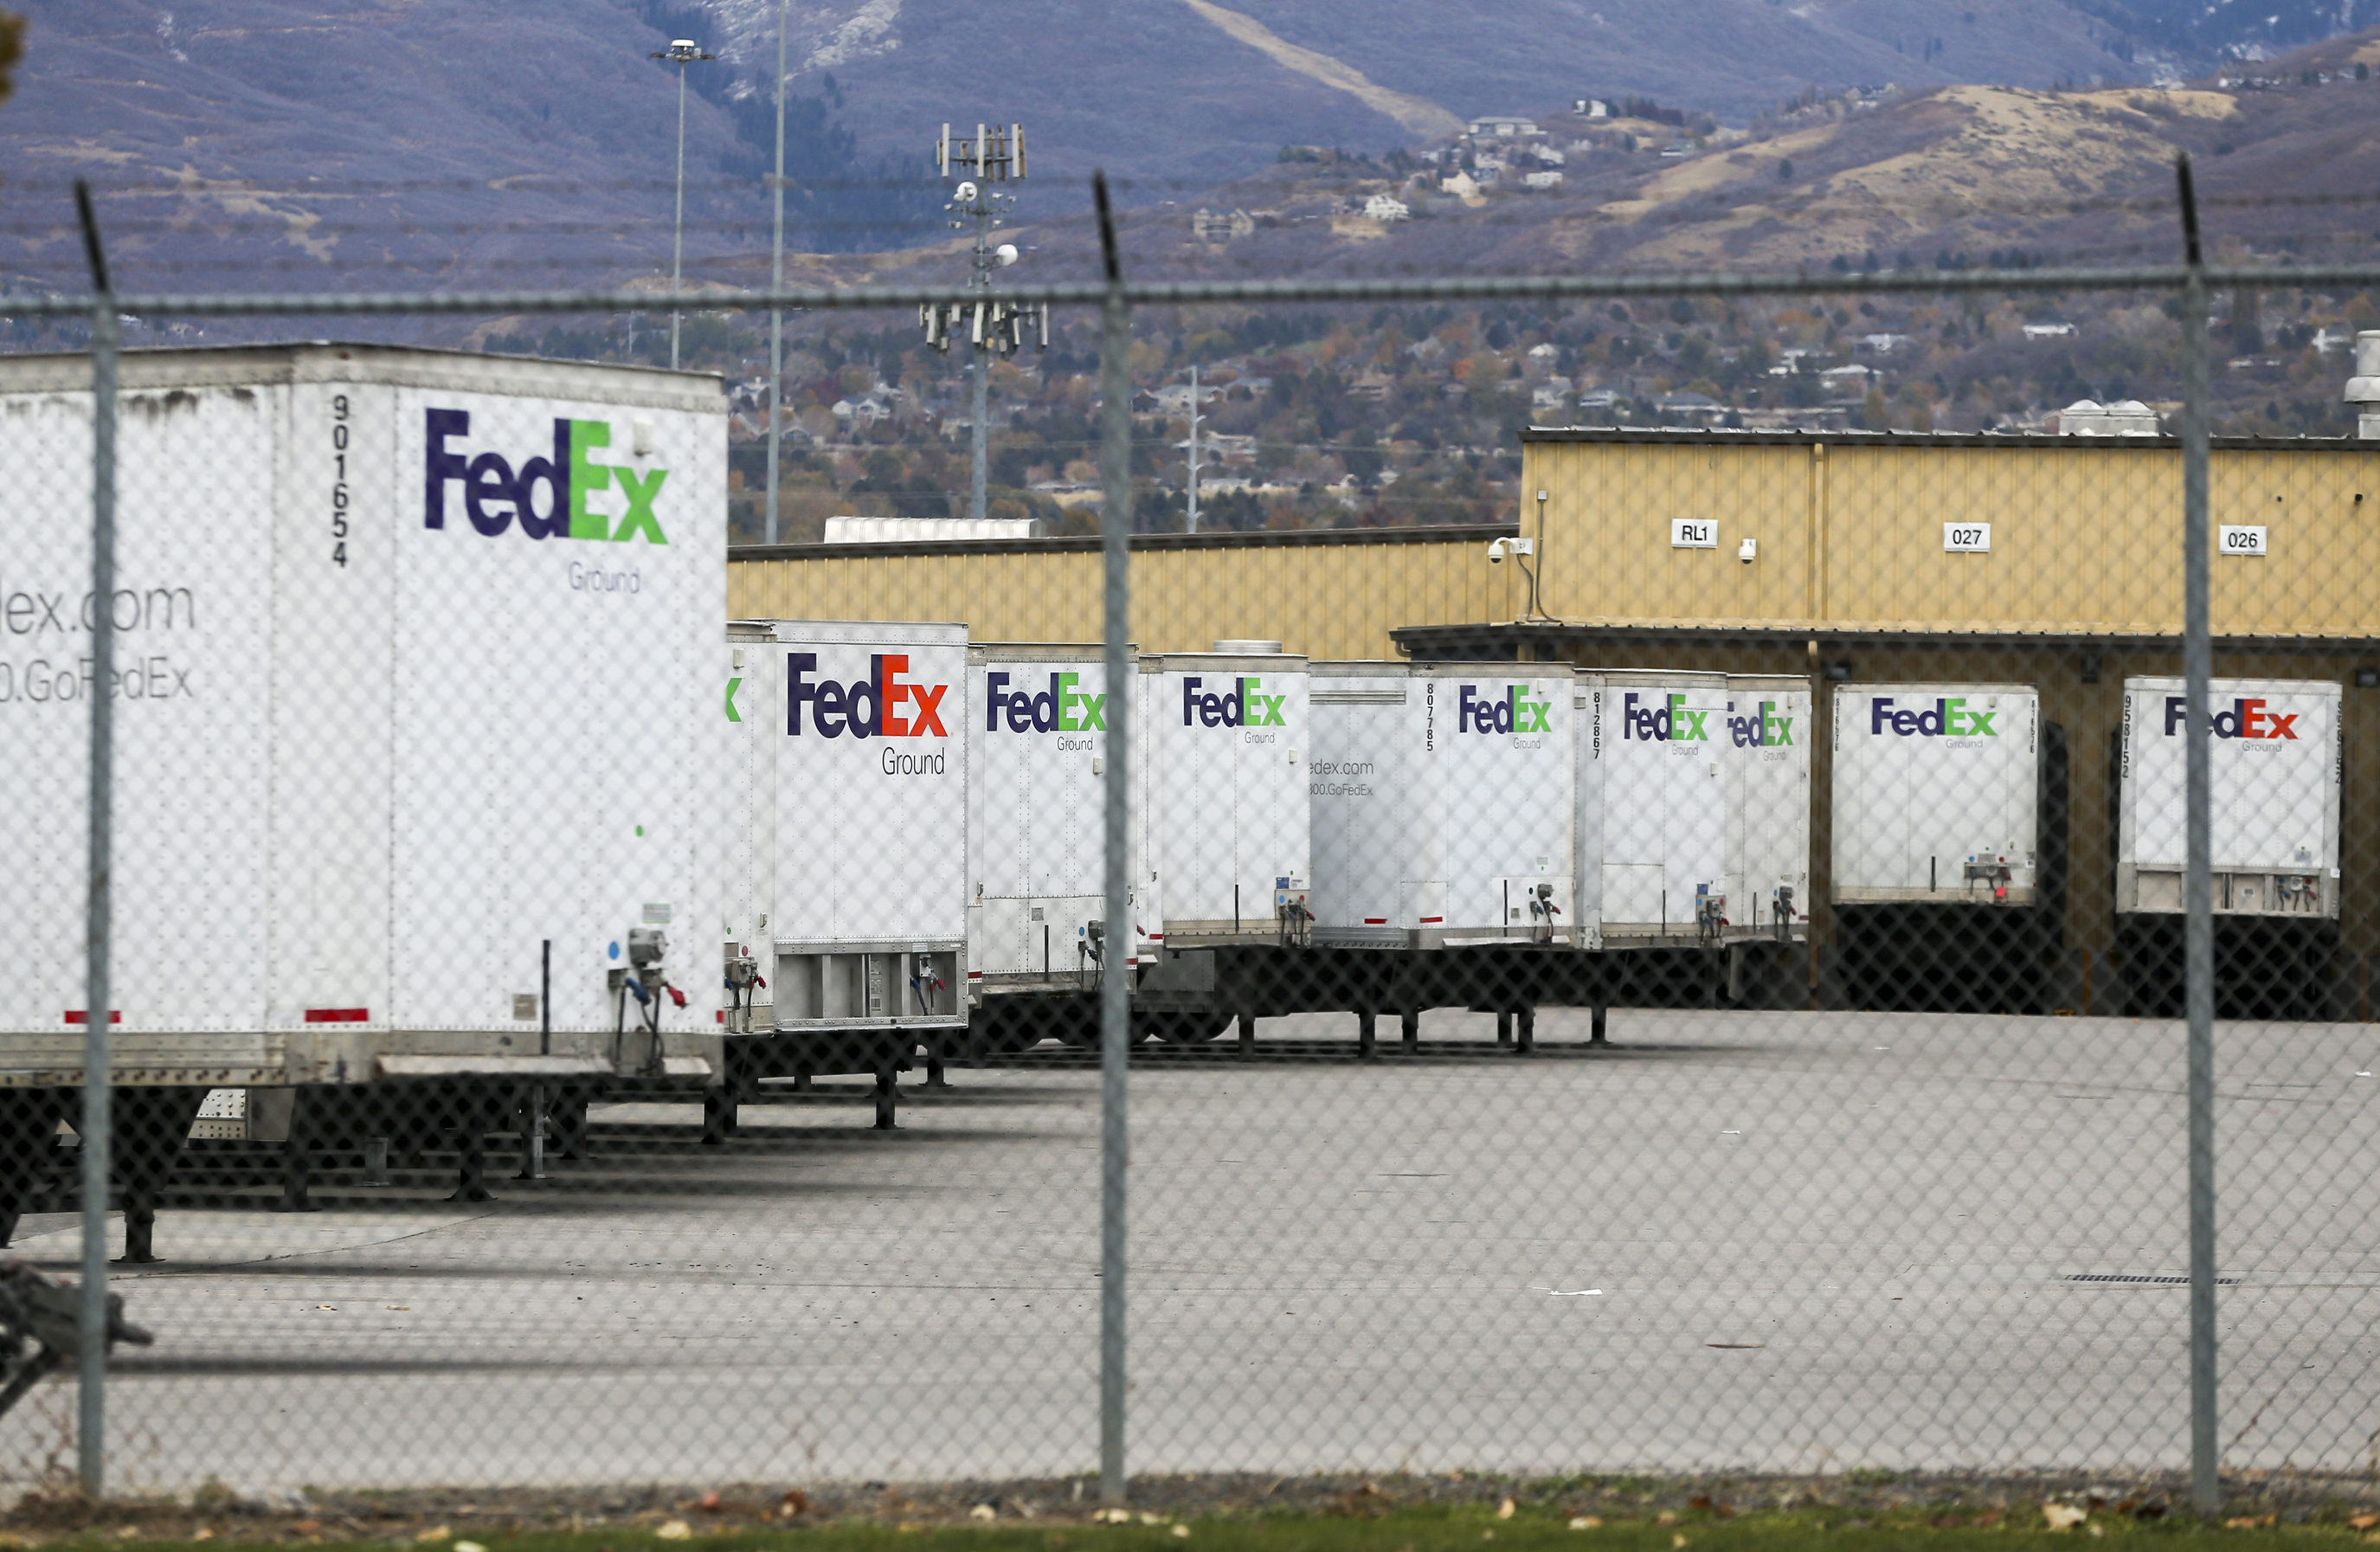 Truck trailers are parked at a FedEx Ground facility in North Salt Lake on Monday, Oct. 28, 2019.